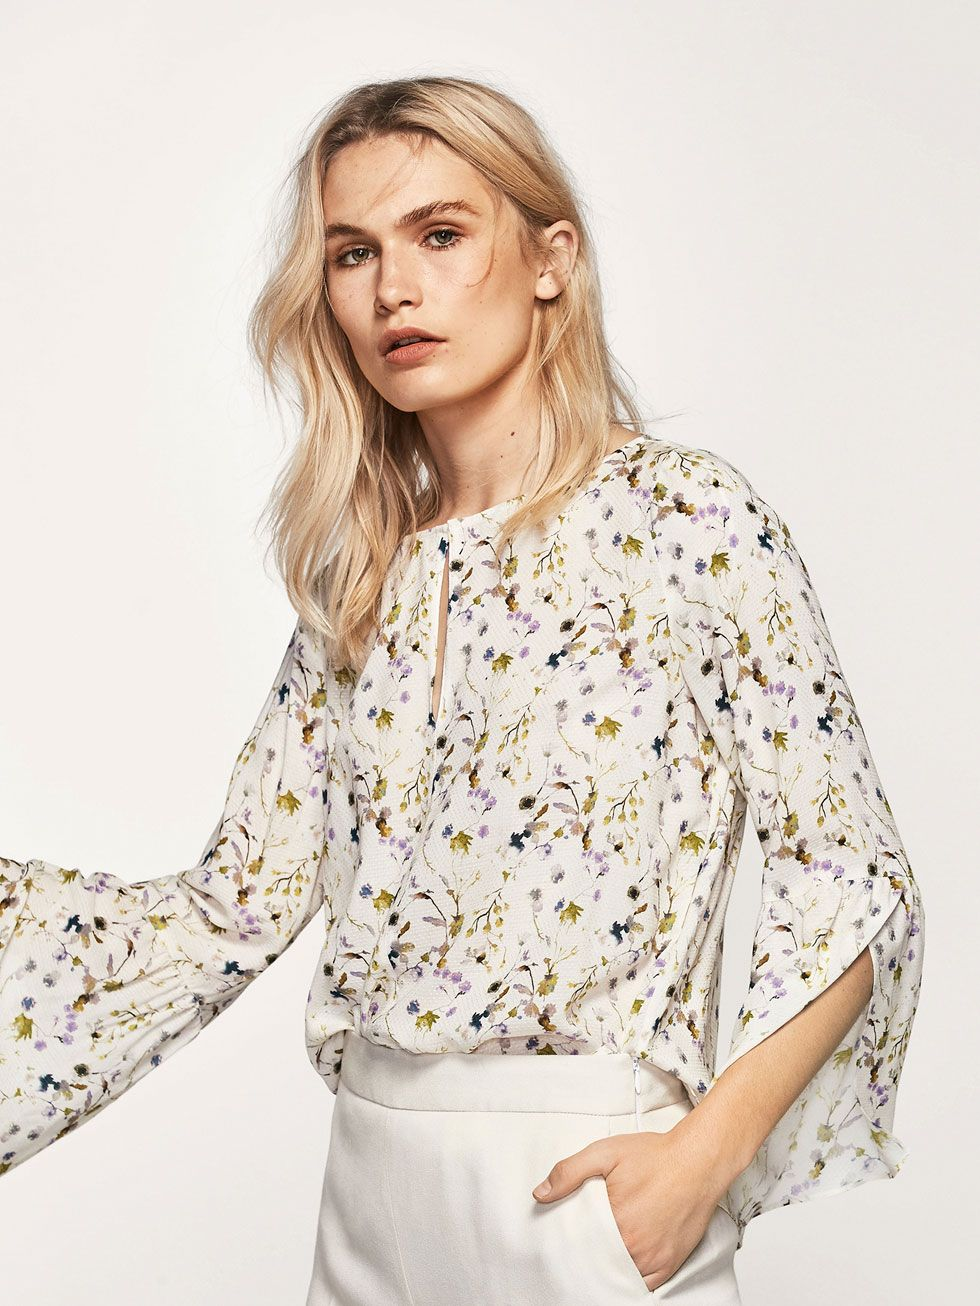 3849ee130b3 Autumn winter 2016 Women´s JACQUARD FLORAL PRINT SHIRT at Massimo Dutti for  279. Effortless elegance!